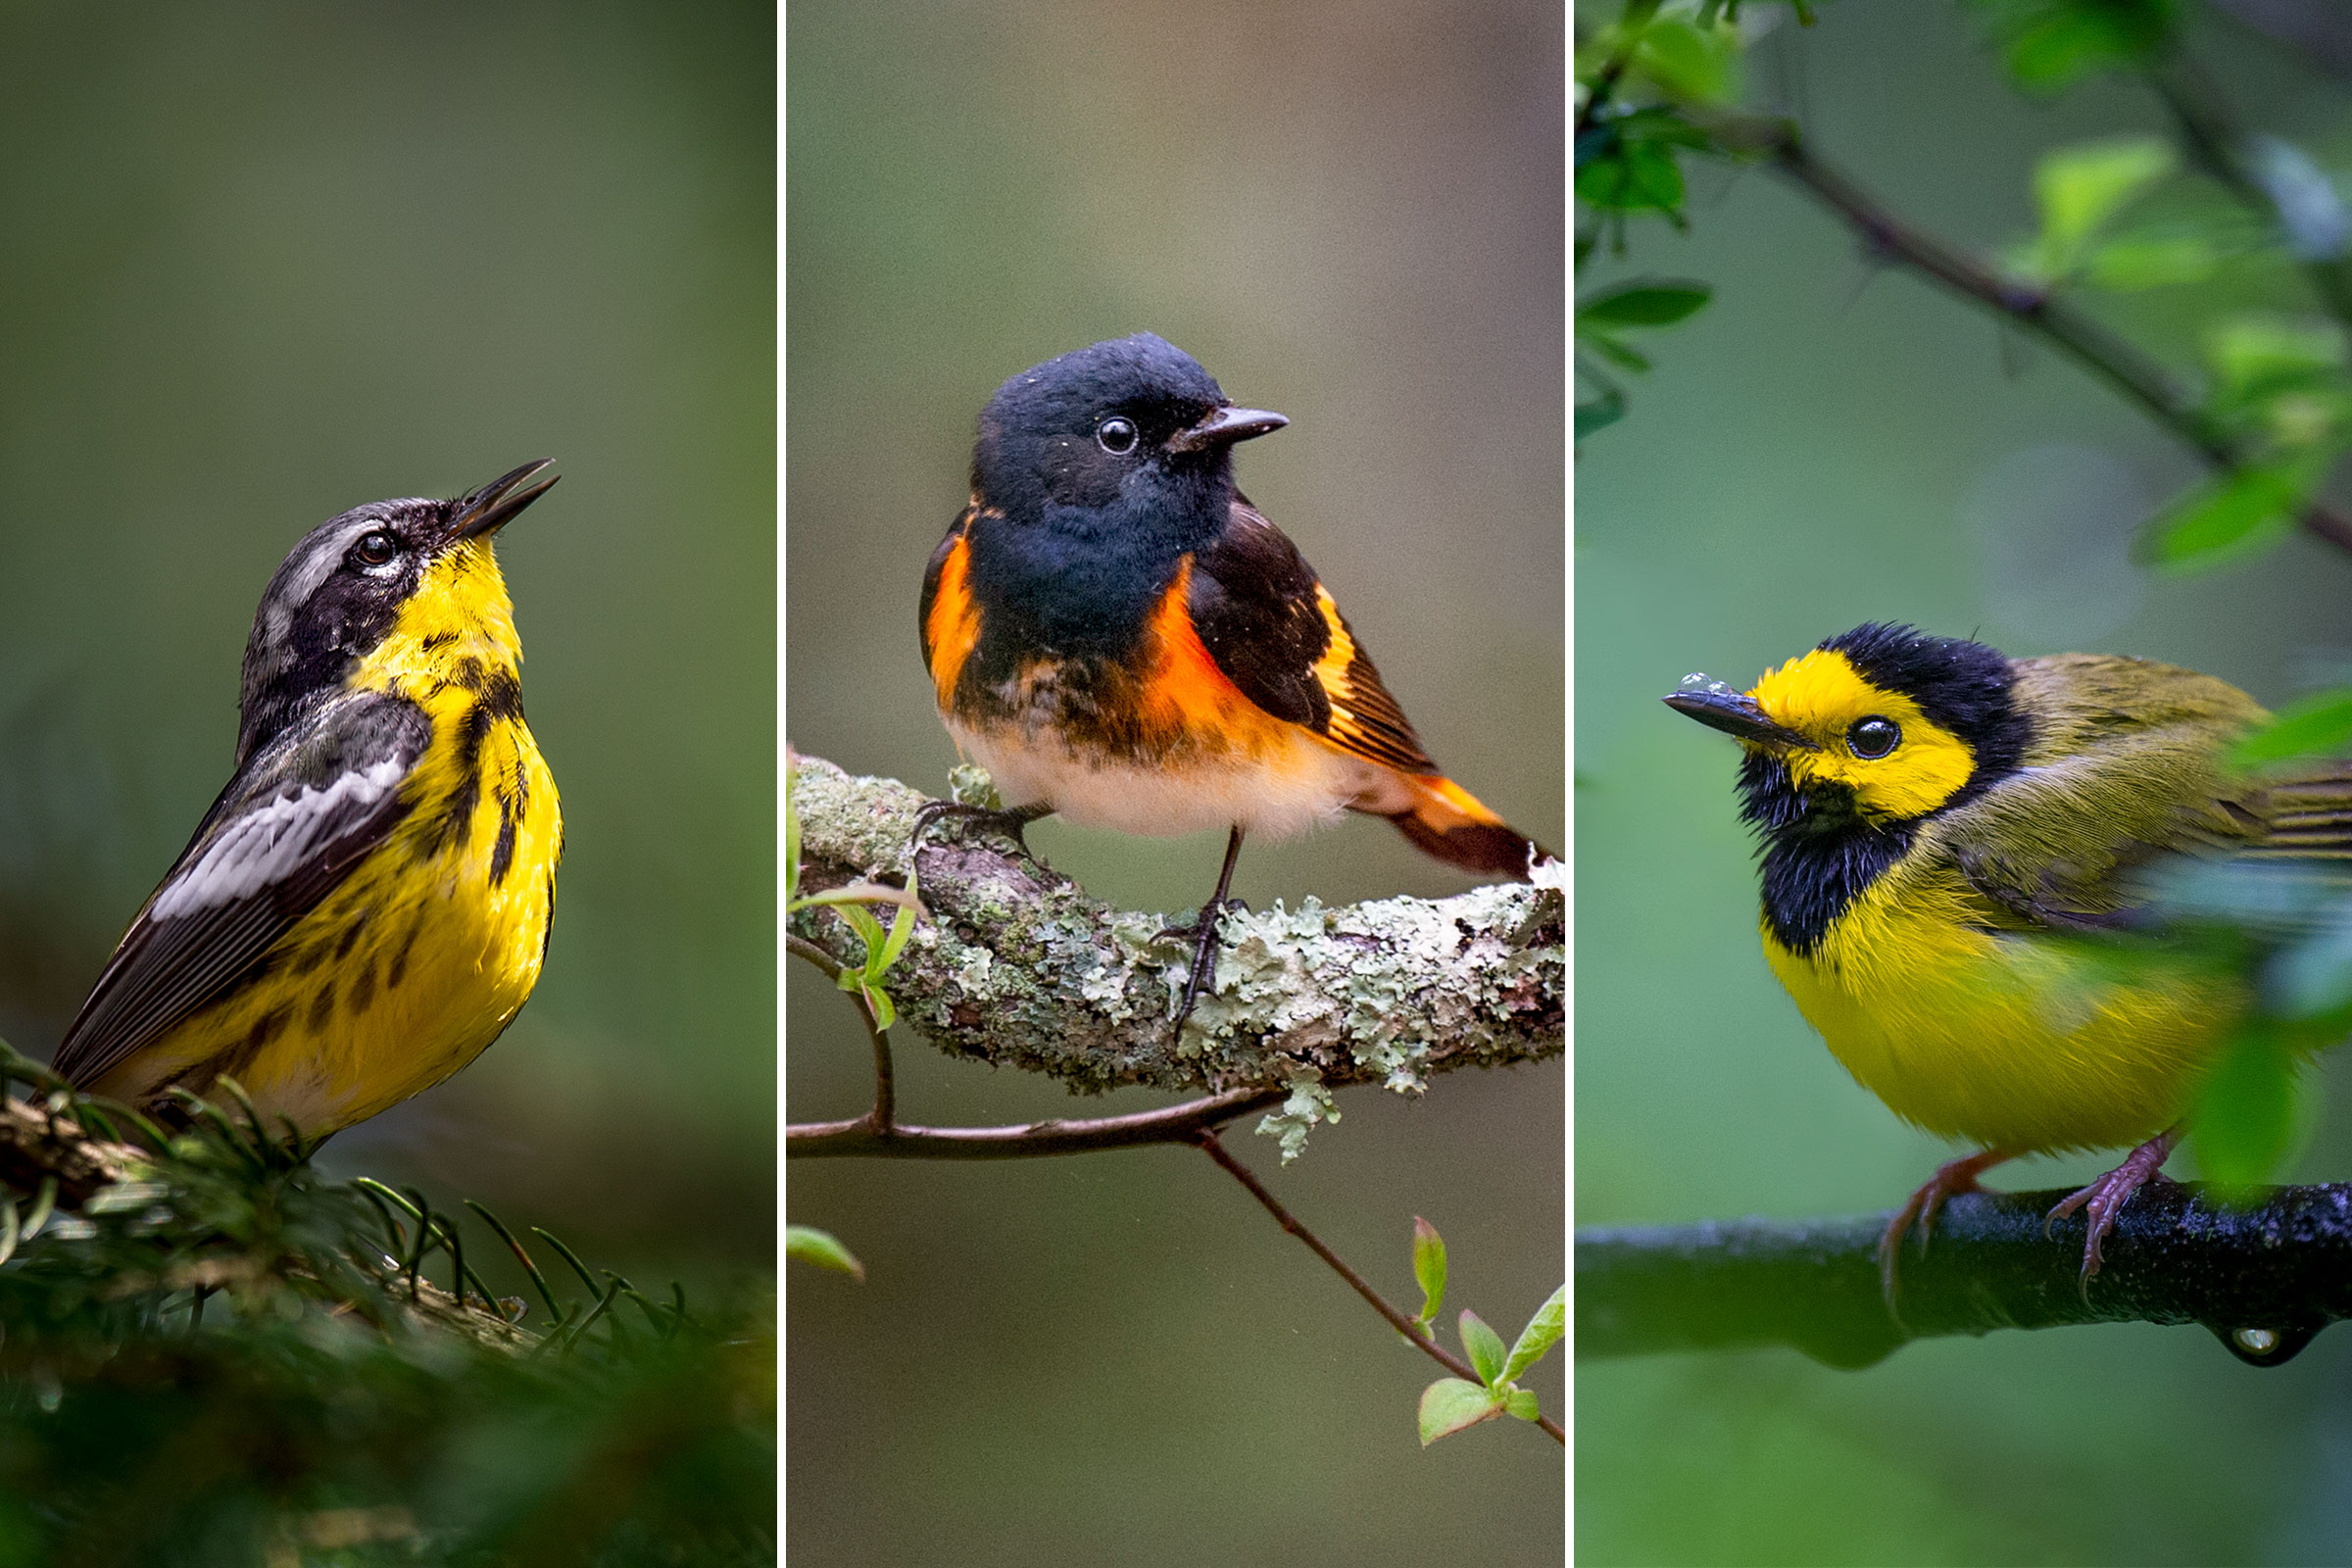 From left: Magnolia Warbler; American Redstart; Hooded Warbler. Photos: Ray Hennessy/iStock